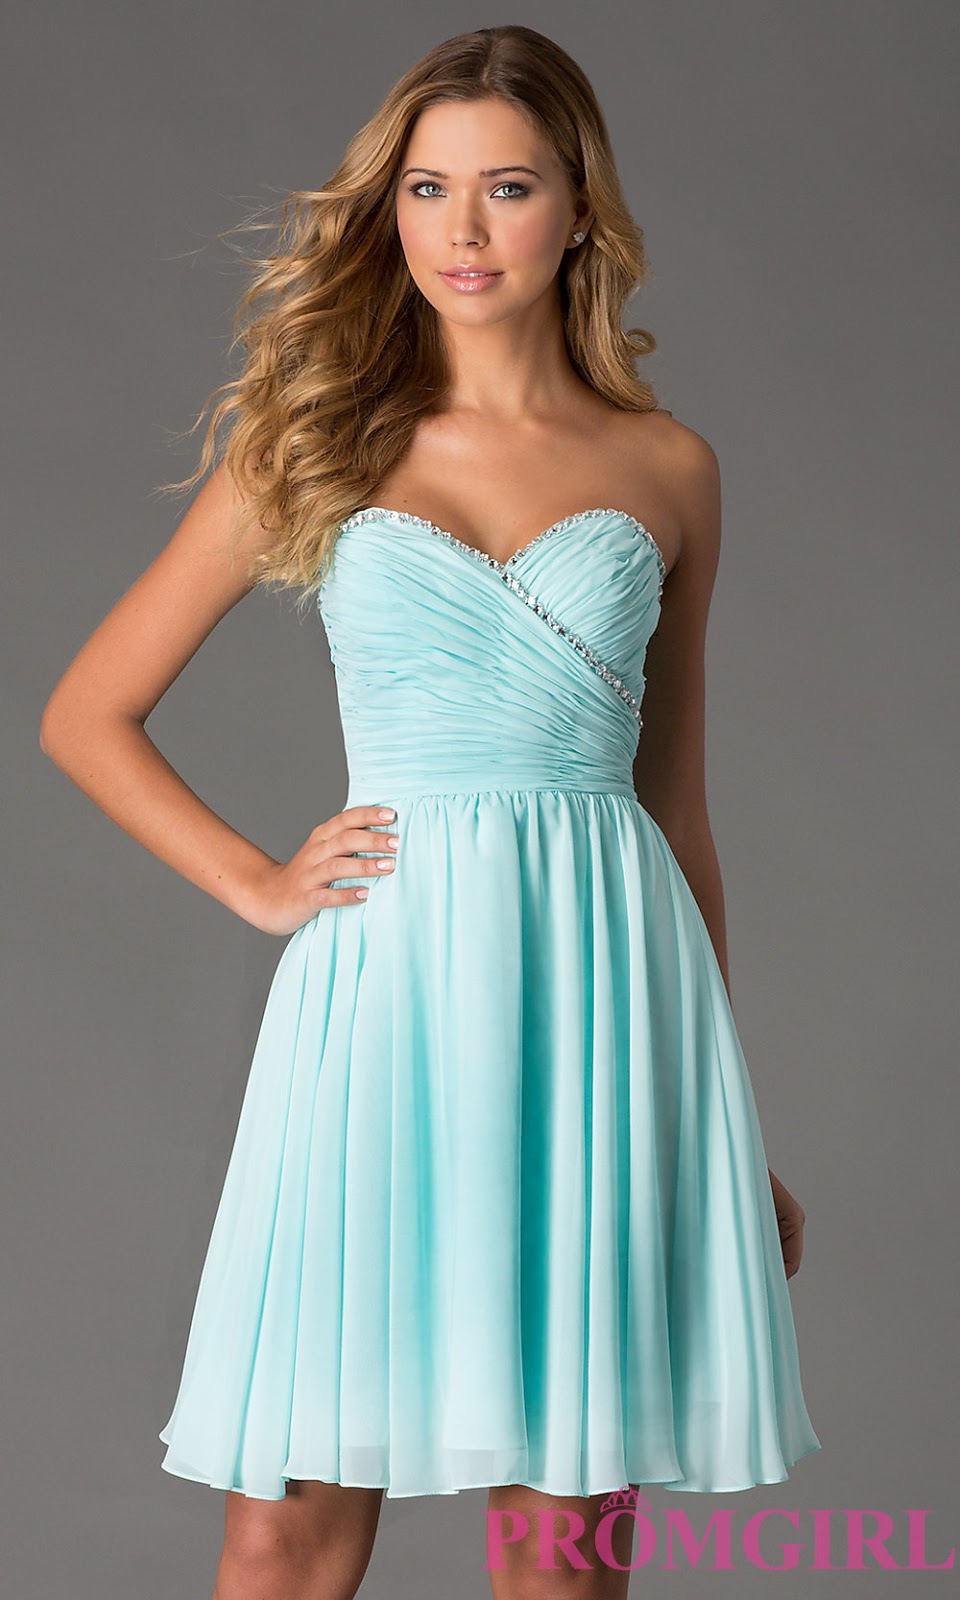 Most Popular Short Bridesmaid Dresses 2015